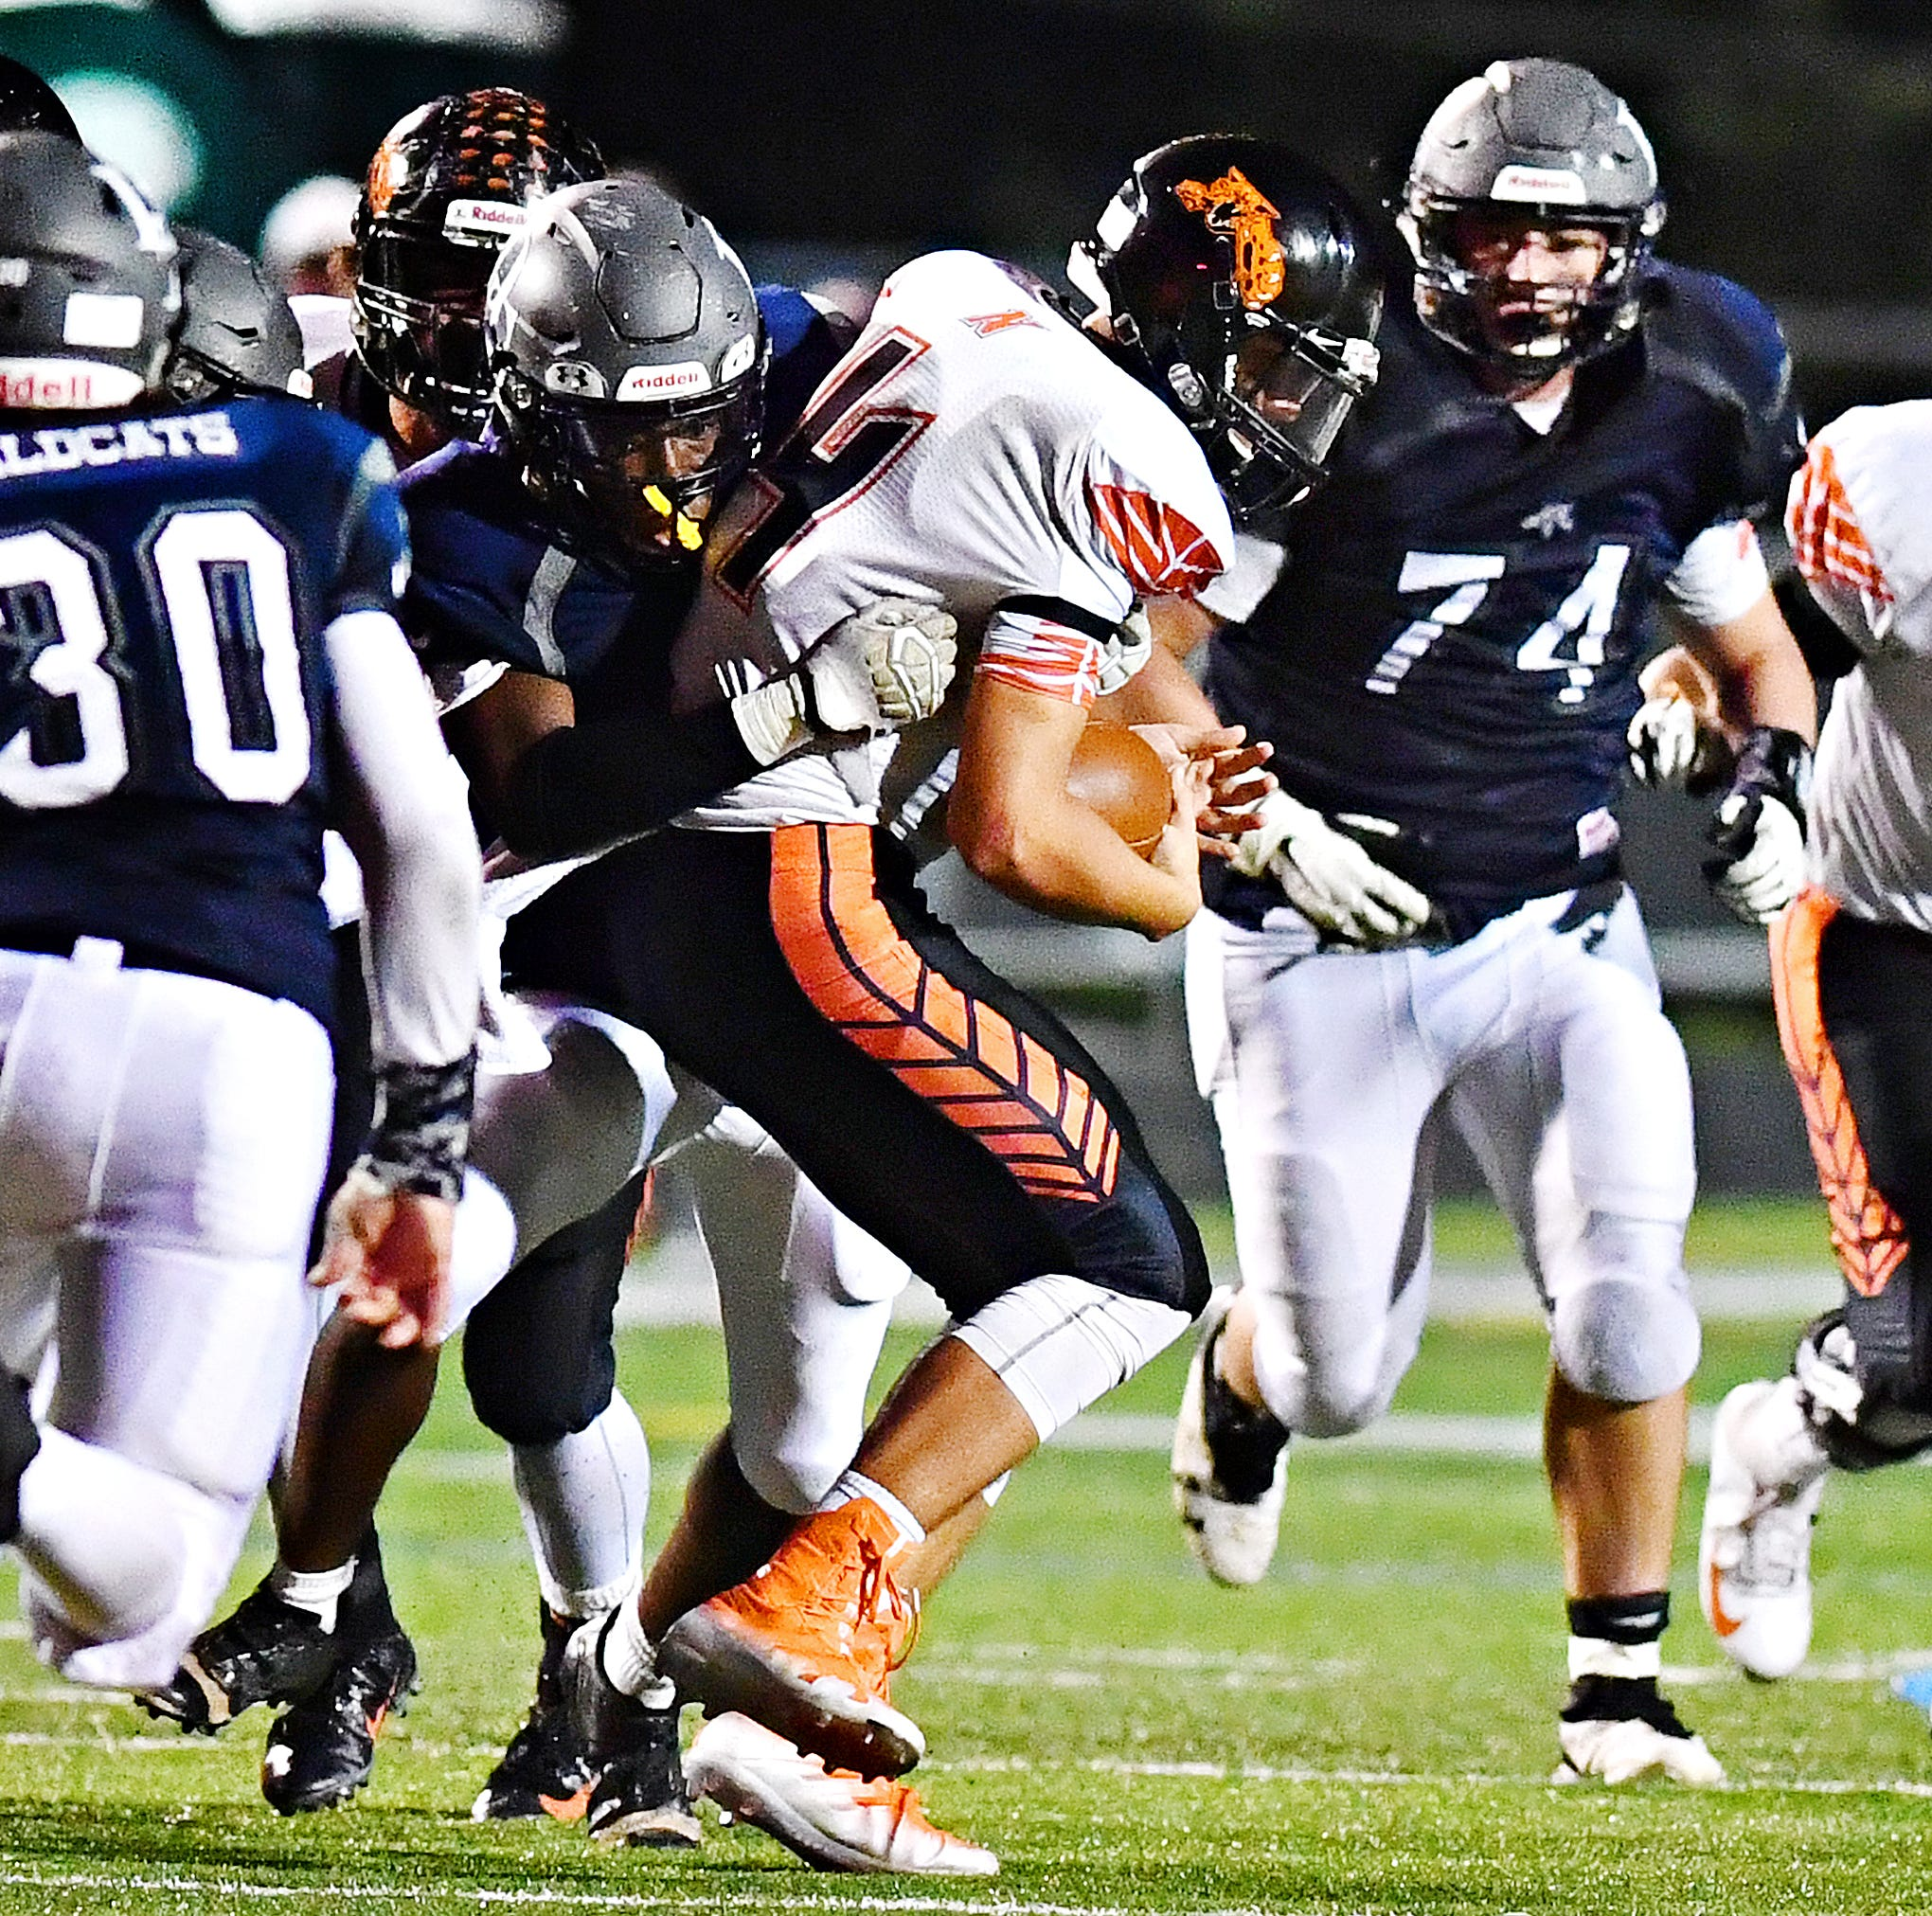 Two-way lineman Raymond Christas 'a monster' for Dallastown High School football team